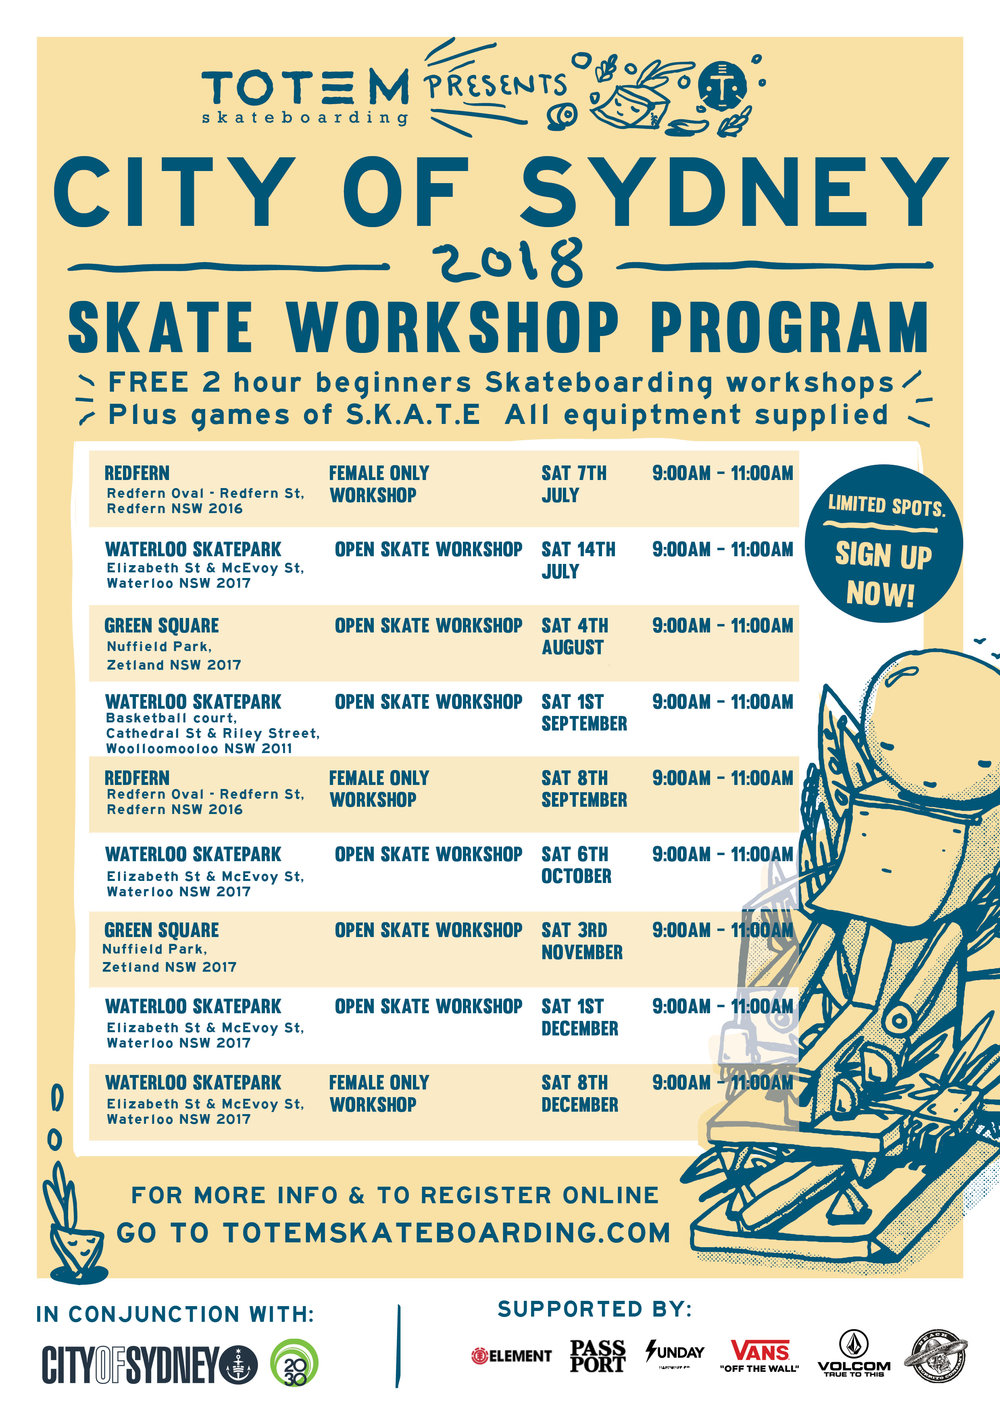 TOTEM SYDNEY CITY EVENT POSTER_UPDATE 22.6.18.jpg